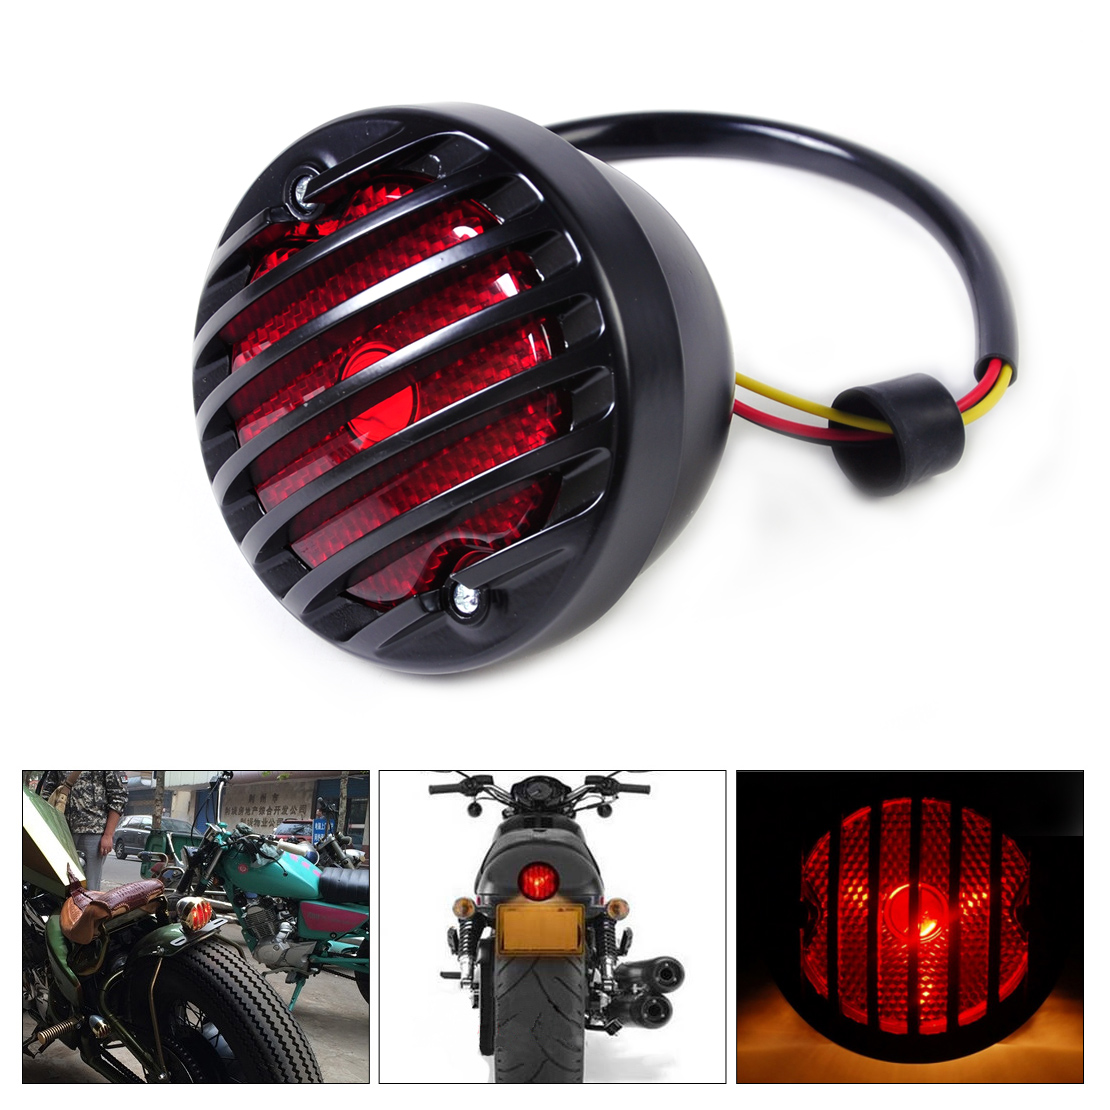 DWCX Motorcycle Ribbed Round Tail Brake Light Lamp For Harley BMW Honda Suzuki Yamaha Kawasaki Custom Bobber Chopper Scooters